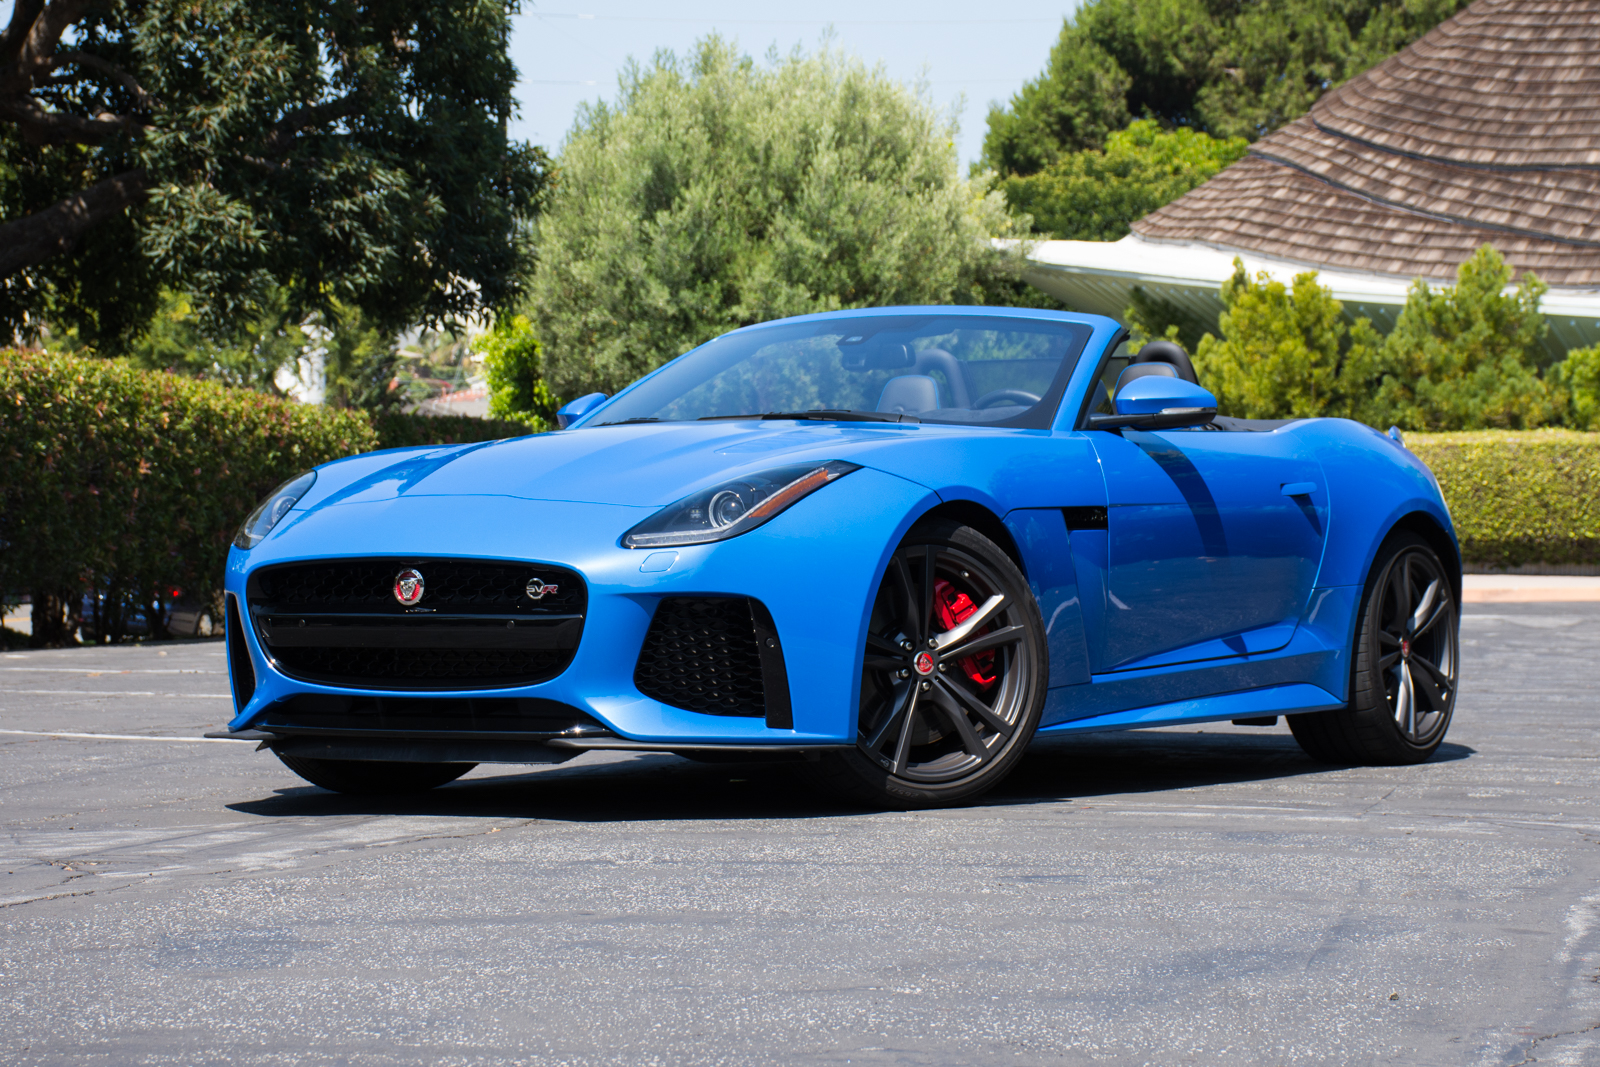 https://i2.wp.com/www.factorytwofour.com/wp-content/uploads/2017/07/2017-Jaguar-F-Type-SVR-Convertible.jpg